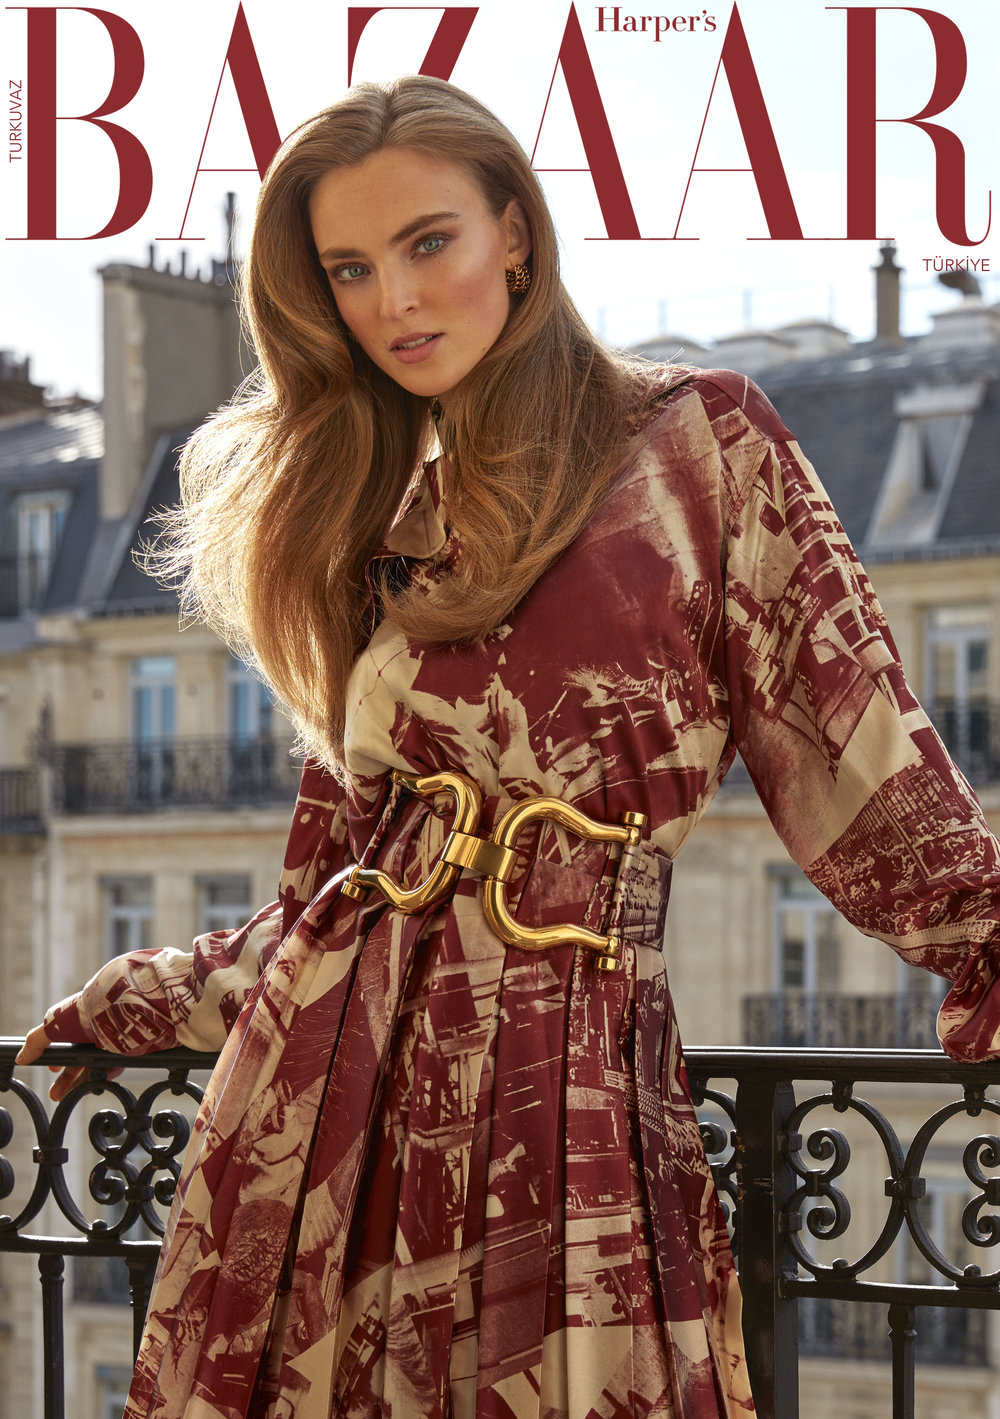 Harper's BazaarTurkey - 2018, March Issue Digital Cover Story